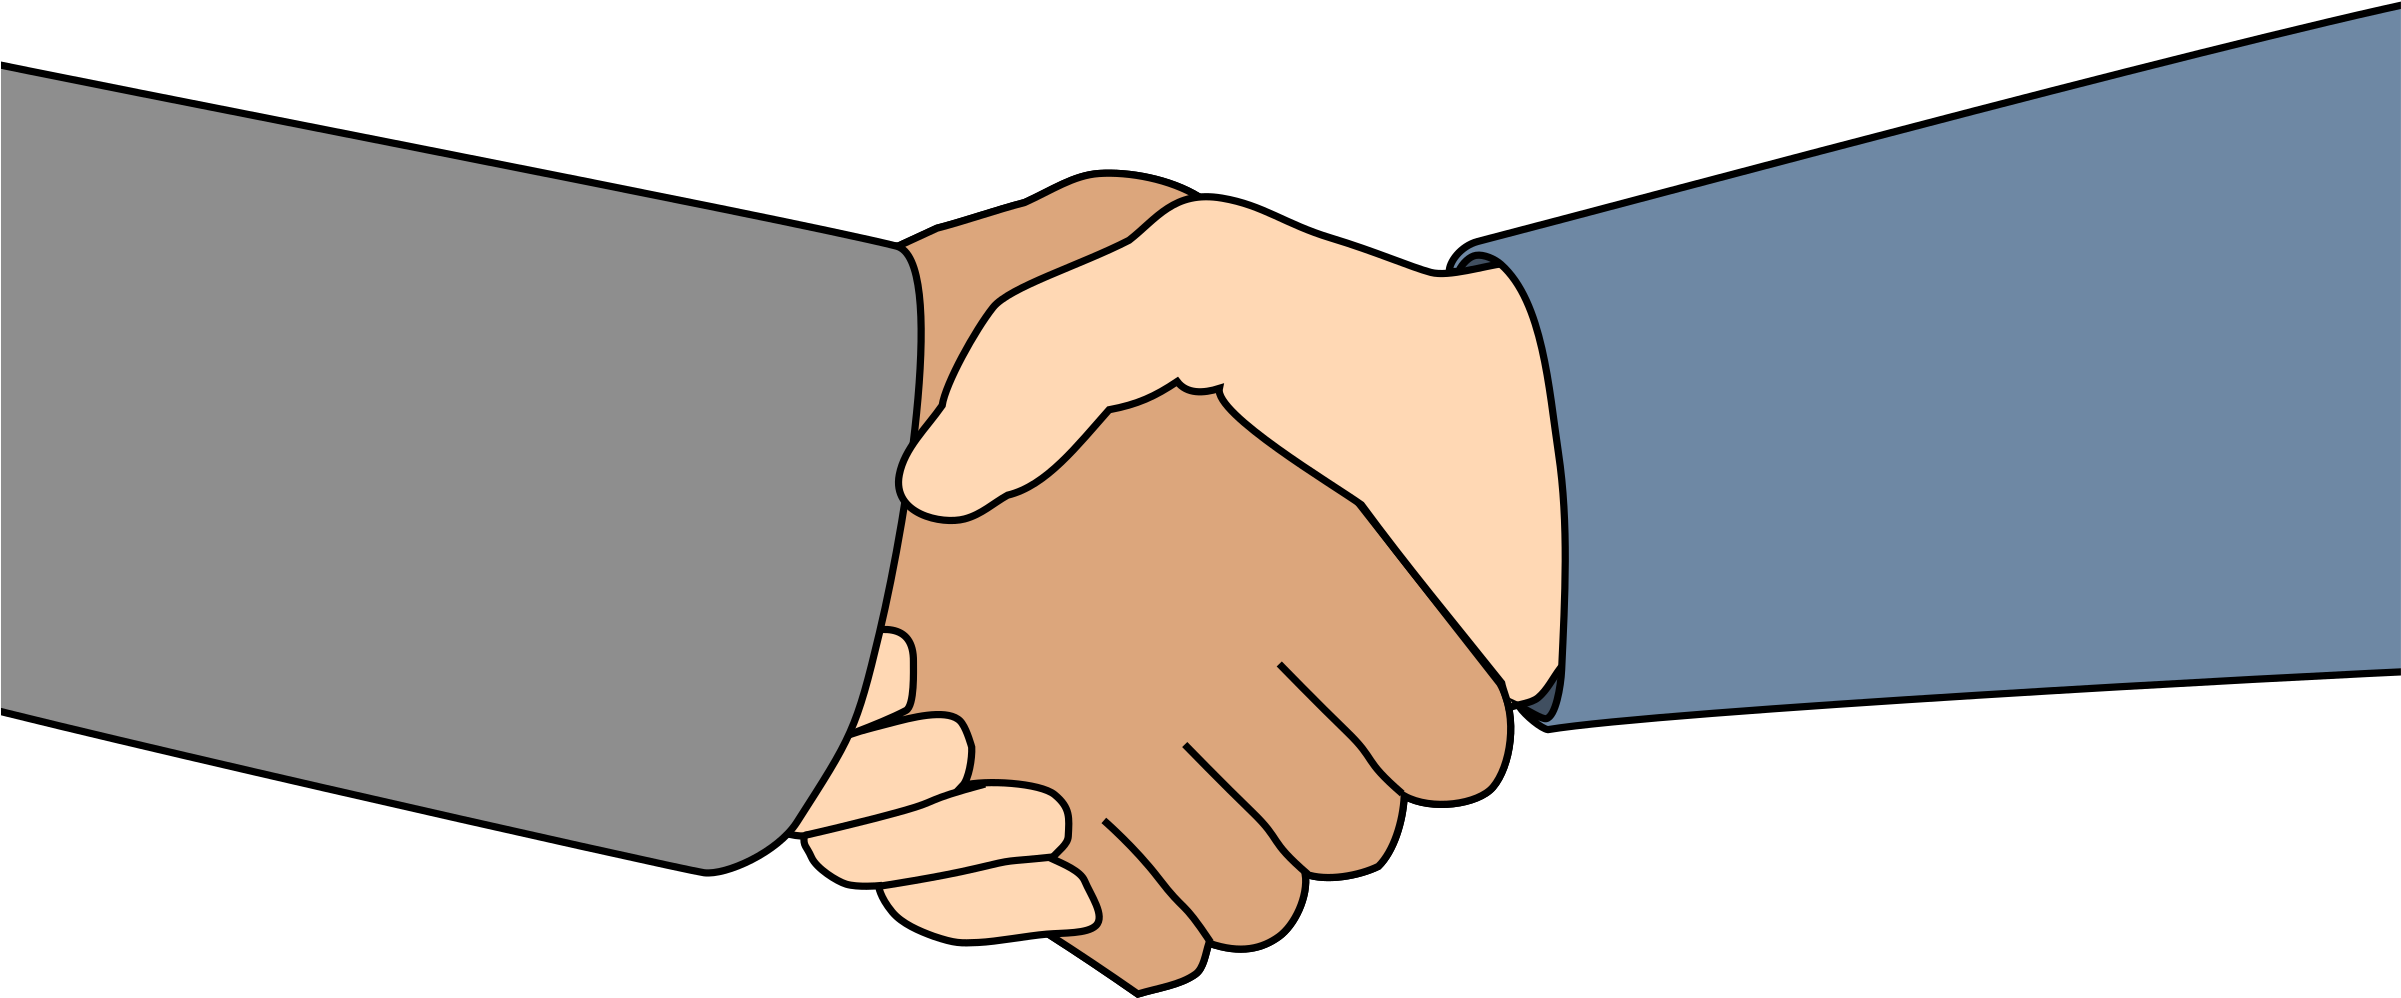 Handshake clipart welcome. Hd image share on